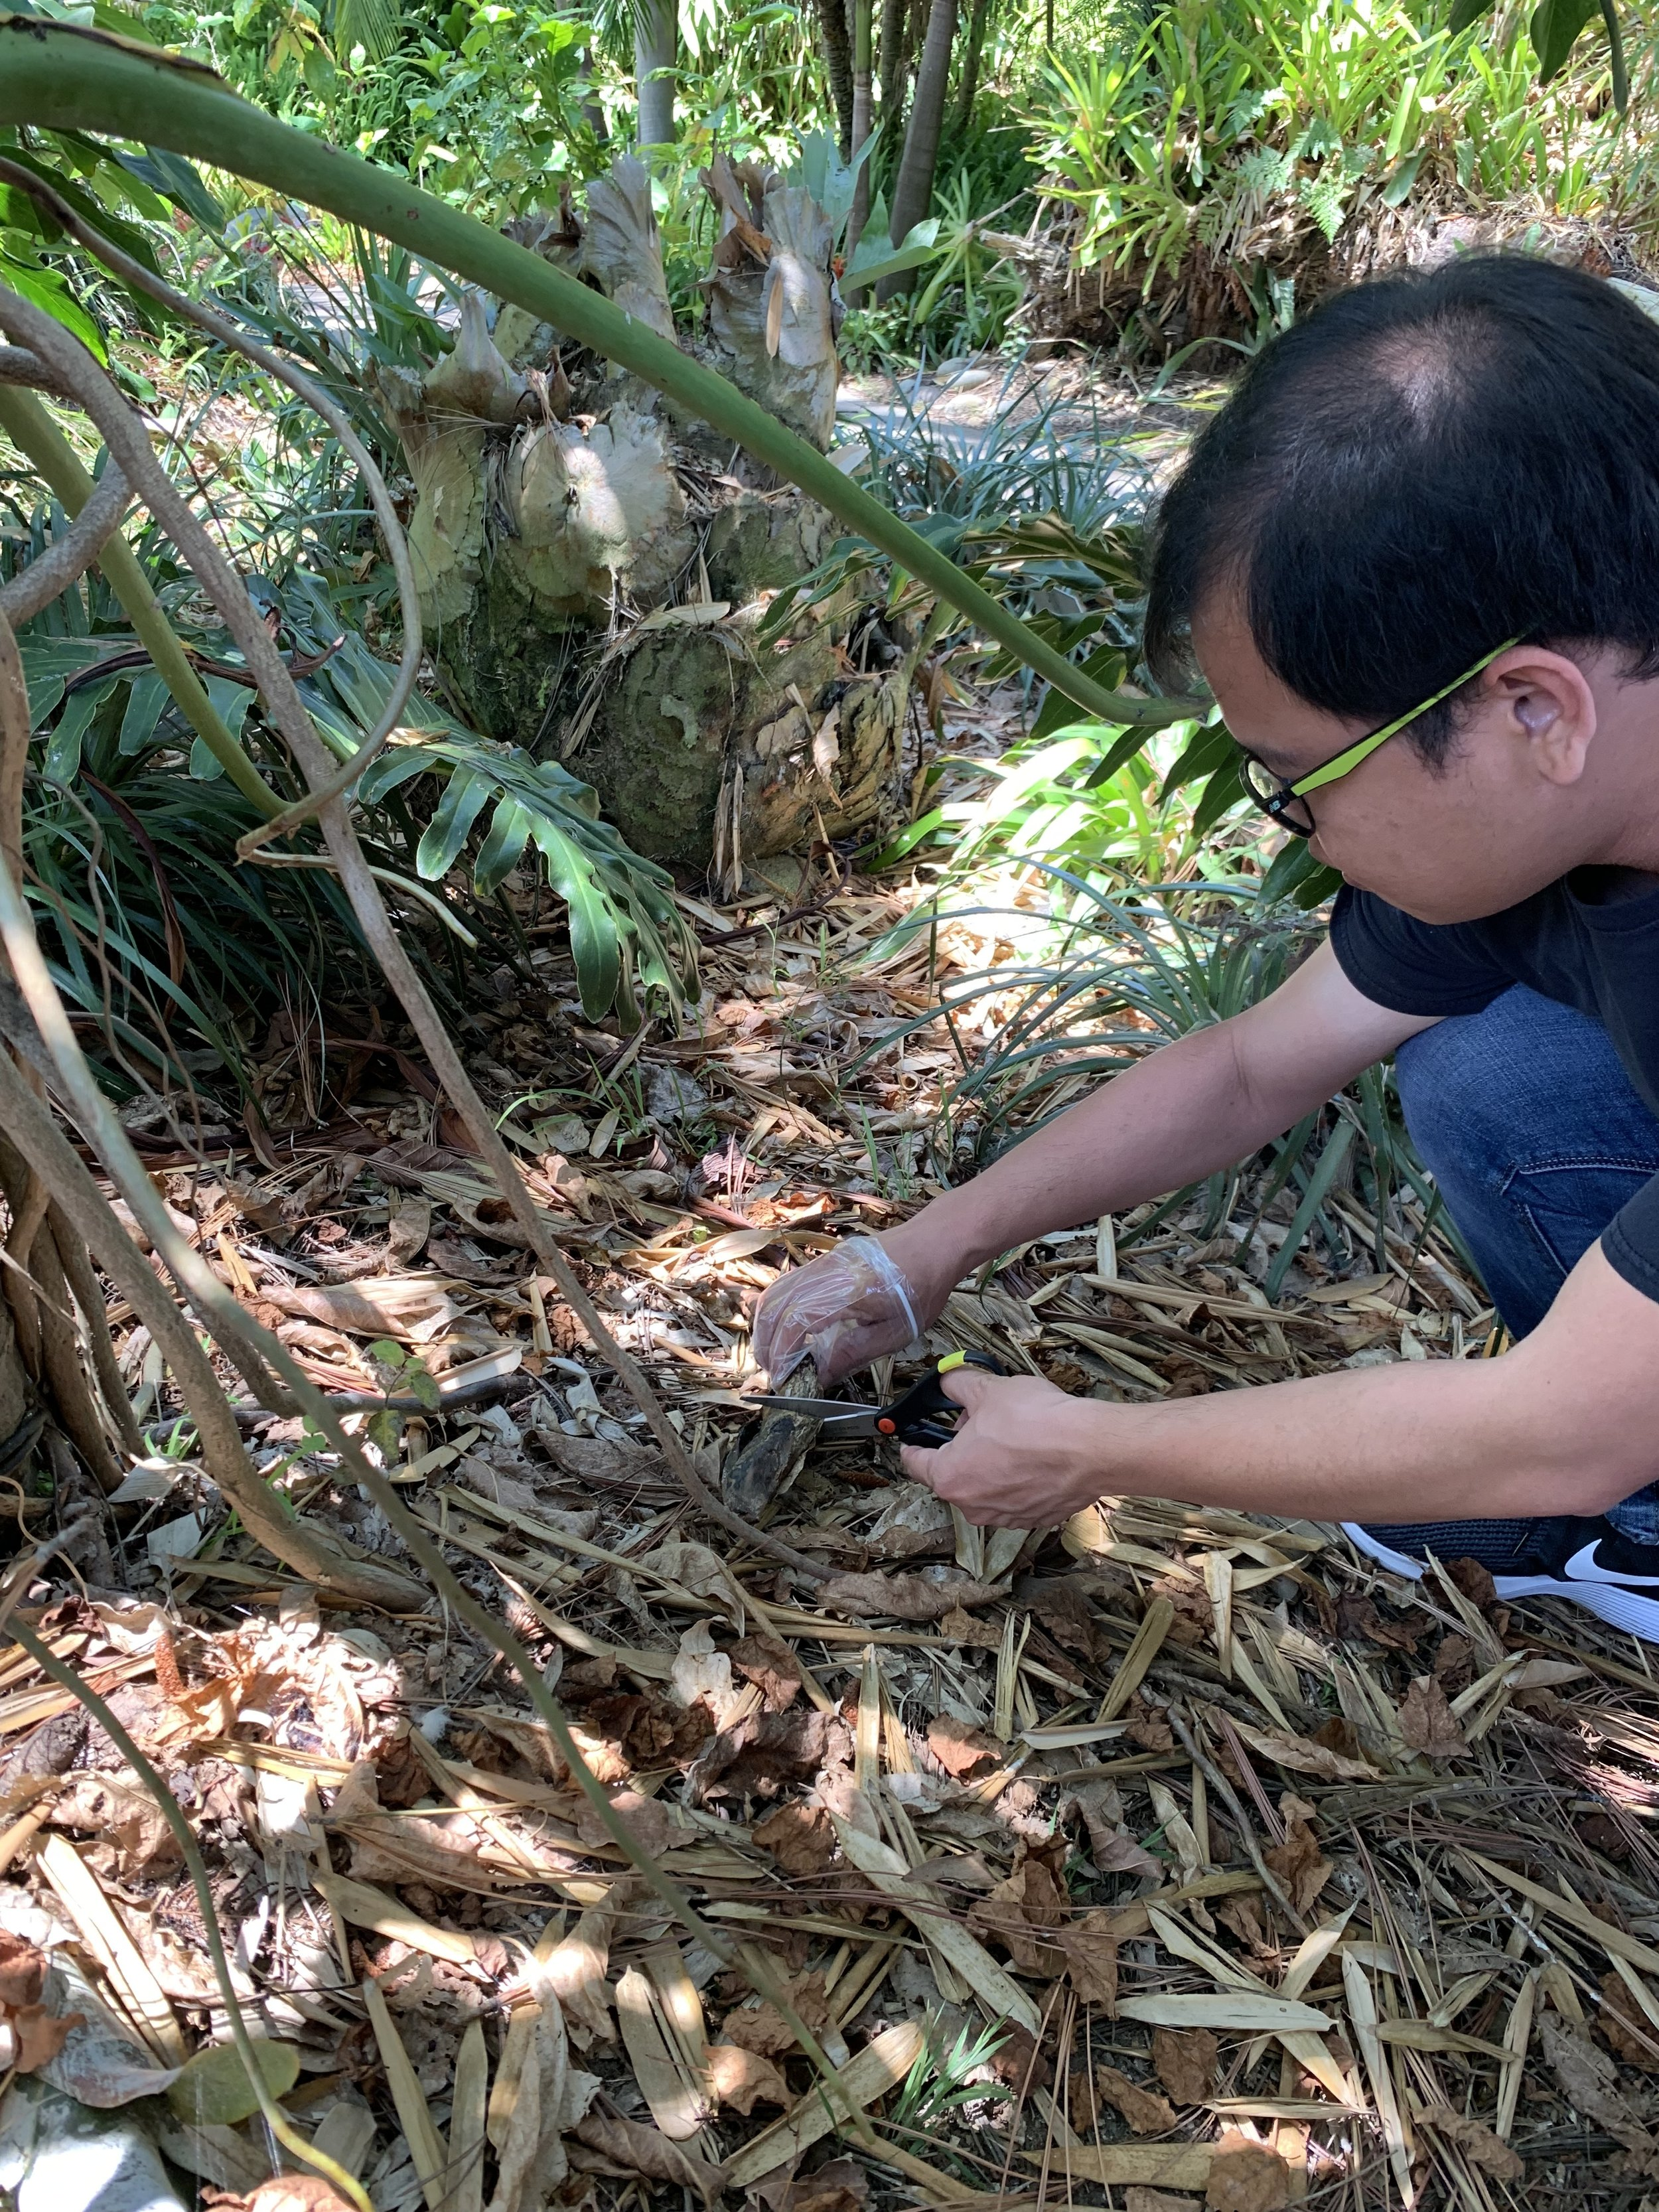 Tuan sampling some disgusting rotten fruit from what looks like Philodendron bipinnatifidum.